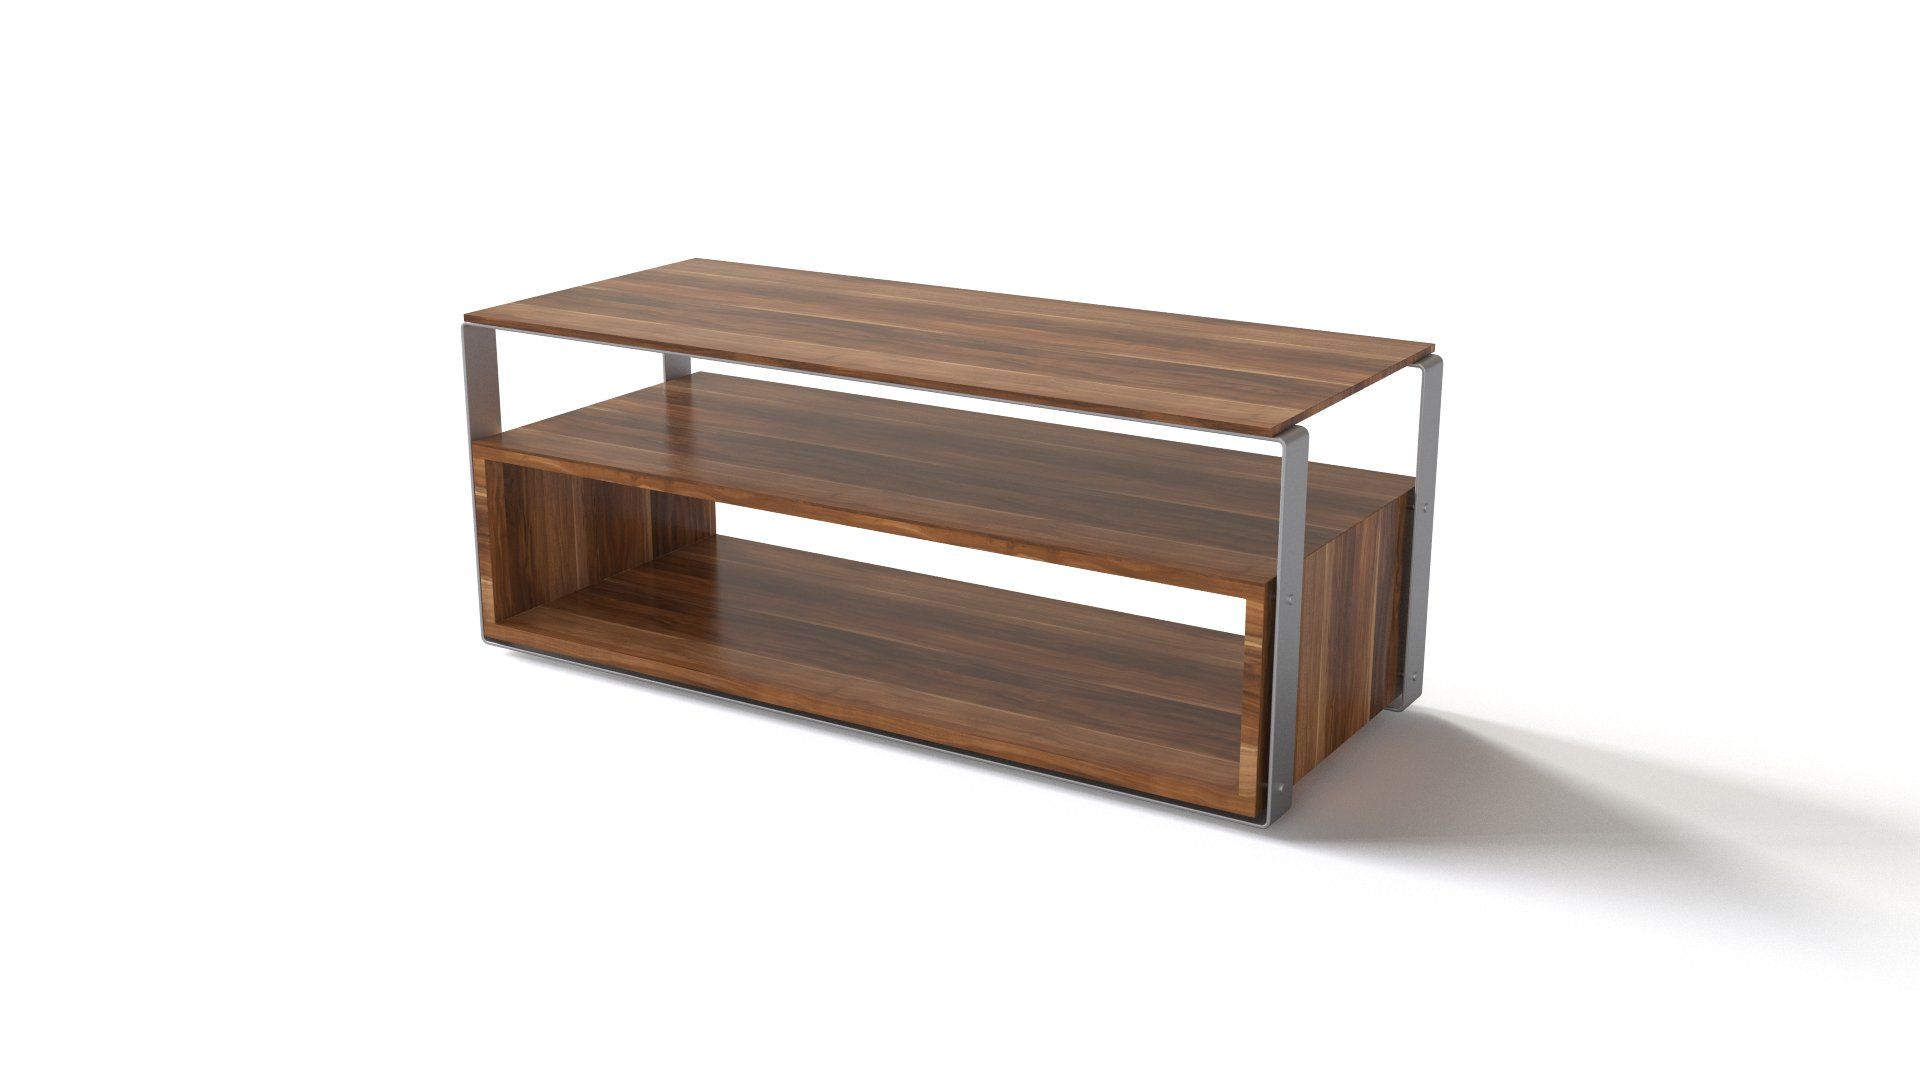 Merveilleux Wooden TV Table With An Extra Shelf